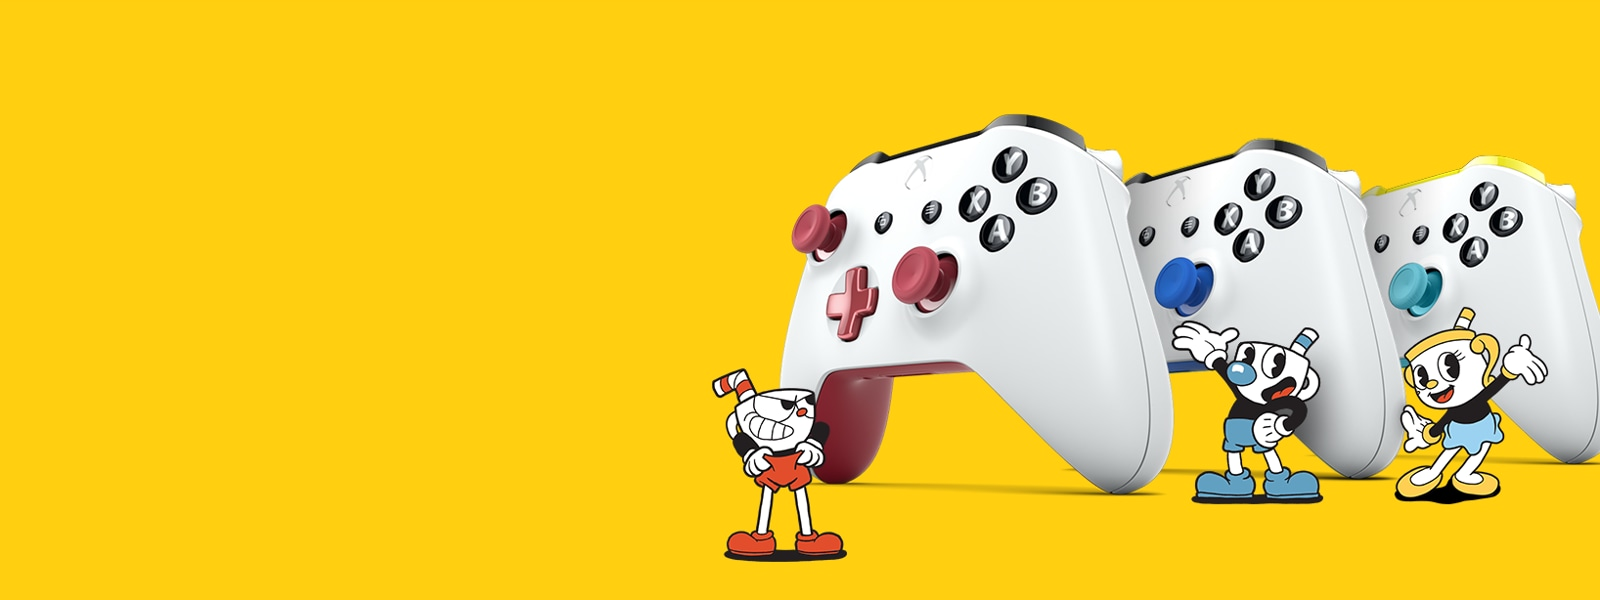 Yellow background with 3 Cuphead inspired Xbox one controllers in the foreground.